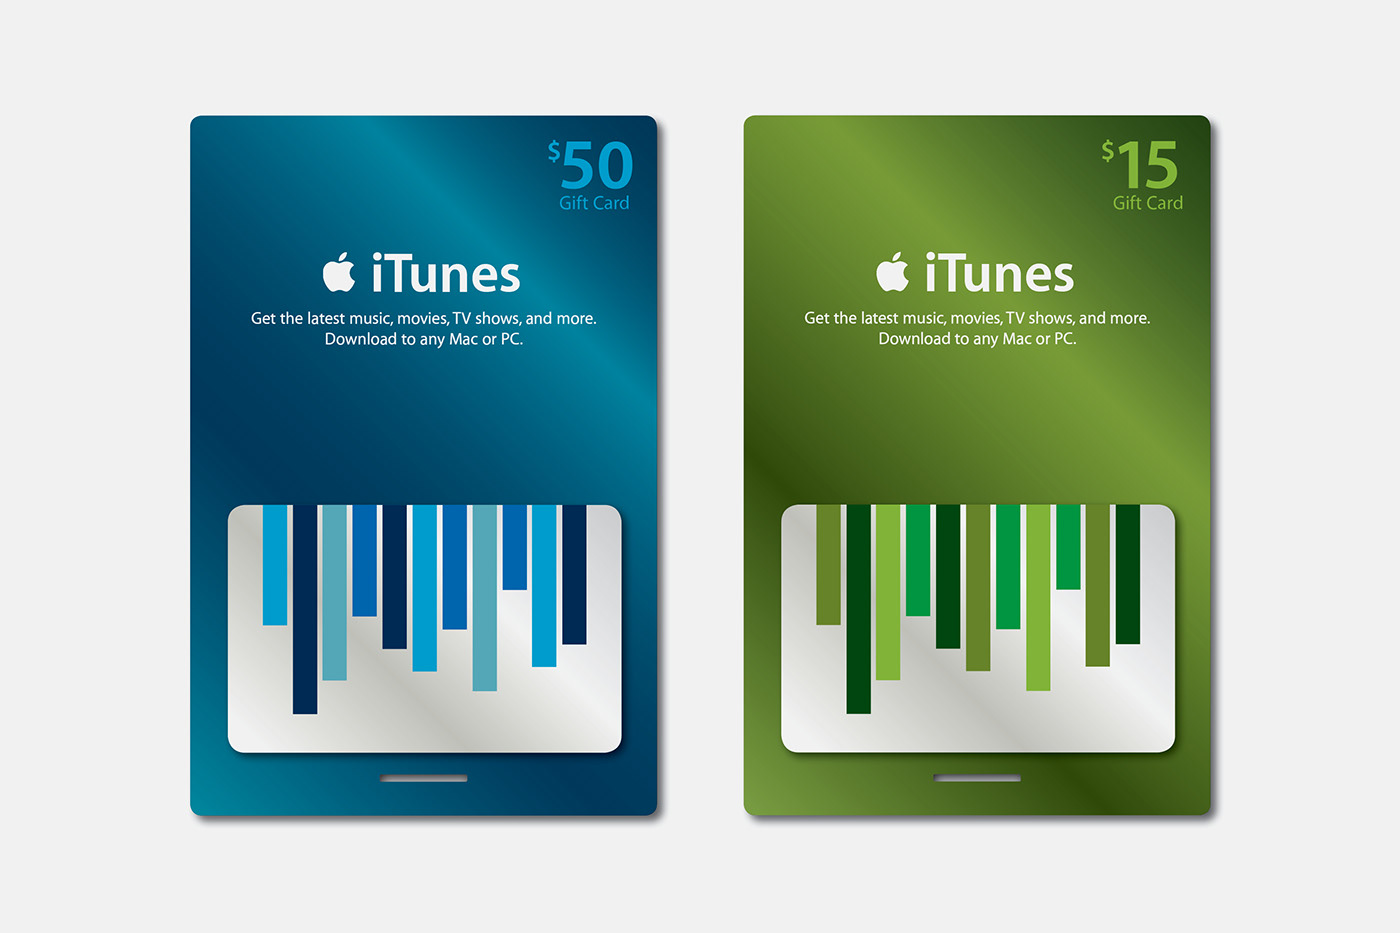 Itunes Gift Cards On Behance Card 45 Below Are Some Of The Studies Done Before Approved Concept Was Produced Concepts Range From Traditional Holiday Imagery To A Winter White Palette